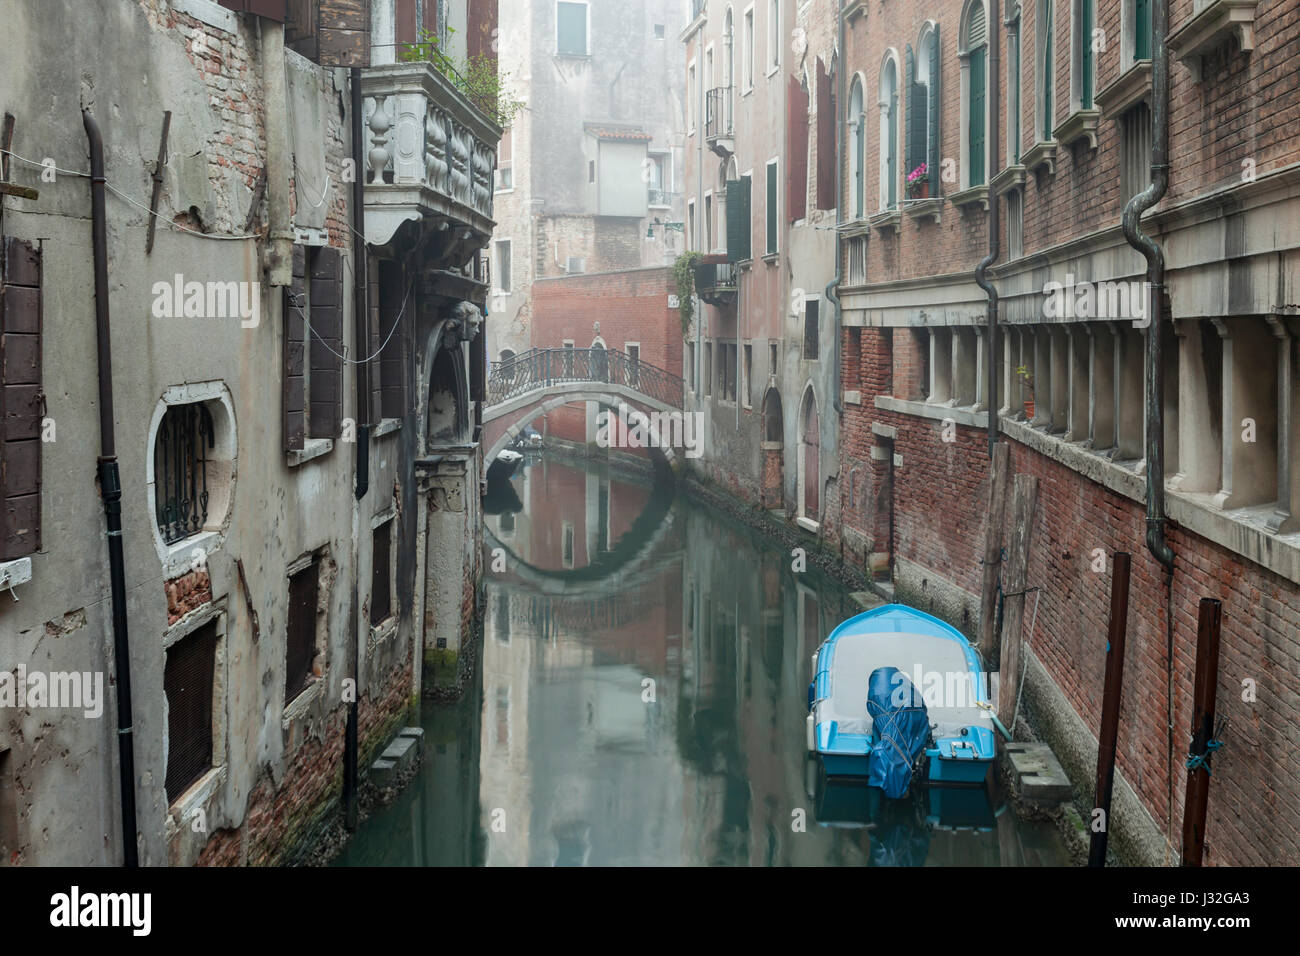 Misty morning in San Marco district of Venice. - Stock Image